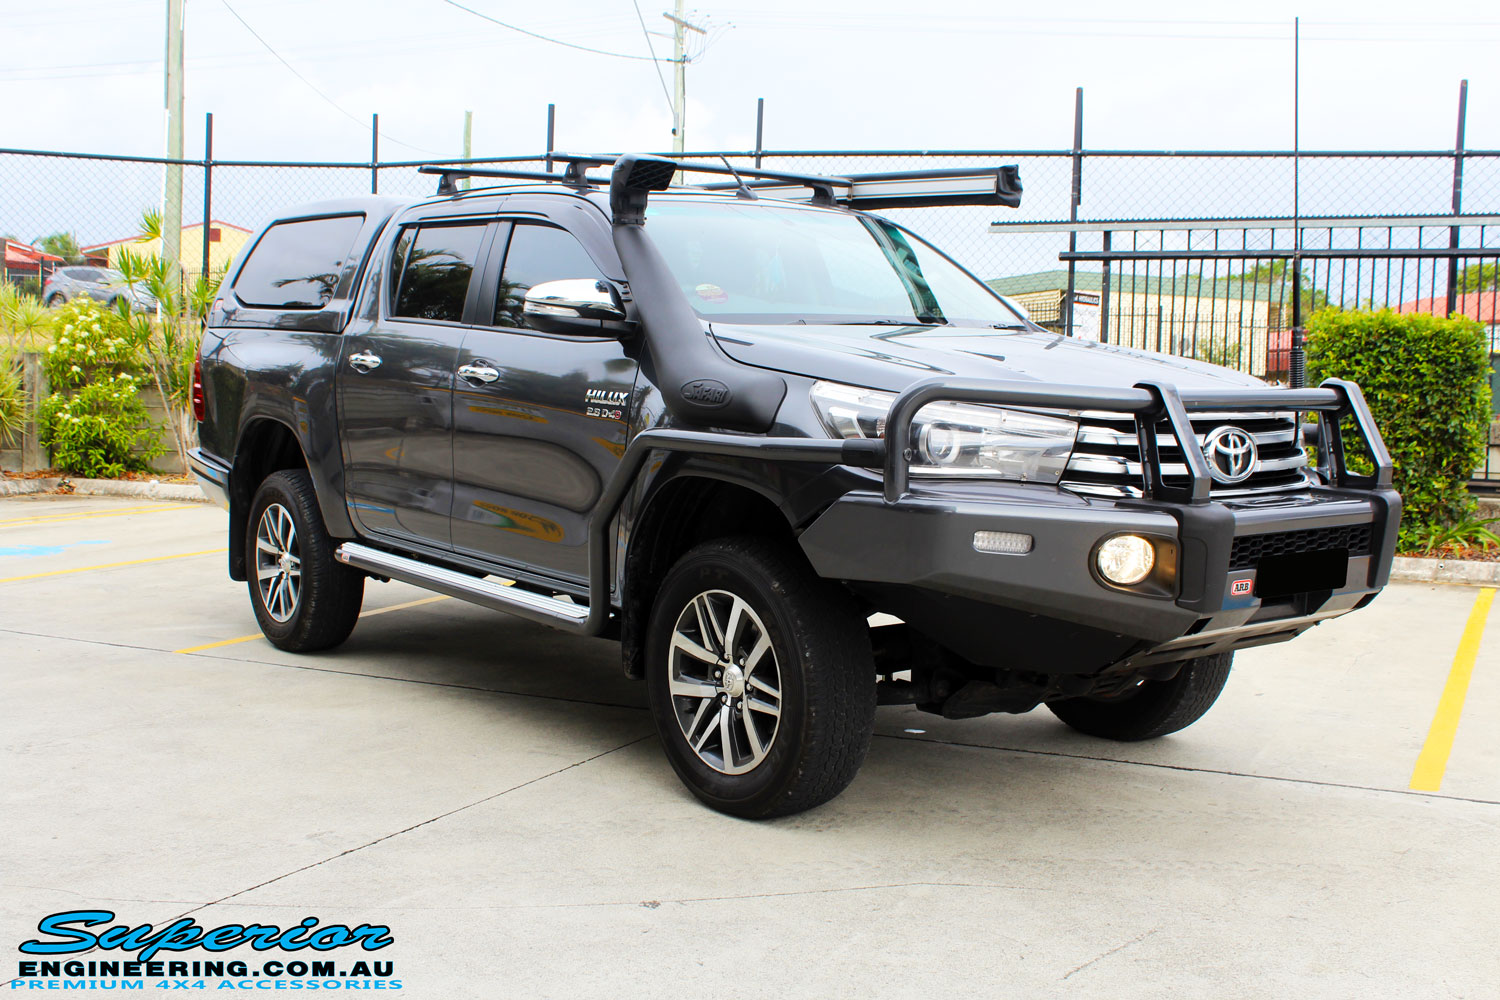 """Left front side view of a Toyota Revo Hilux Dual Cab in Grey after fitment of a Superior Remote Reservoir 3"""" Inch Lift Kit"""